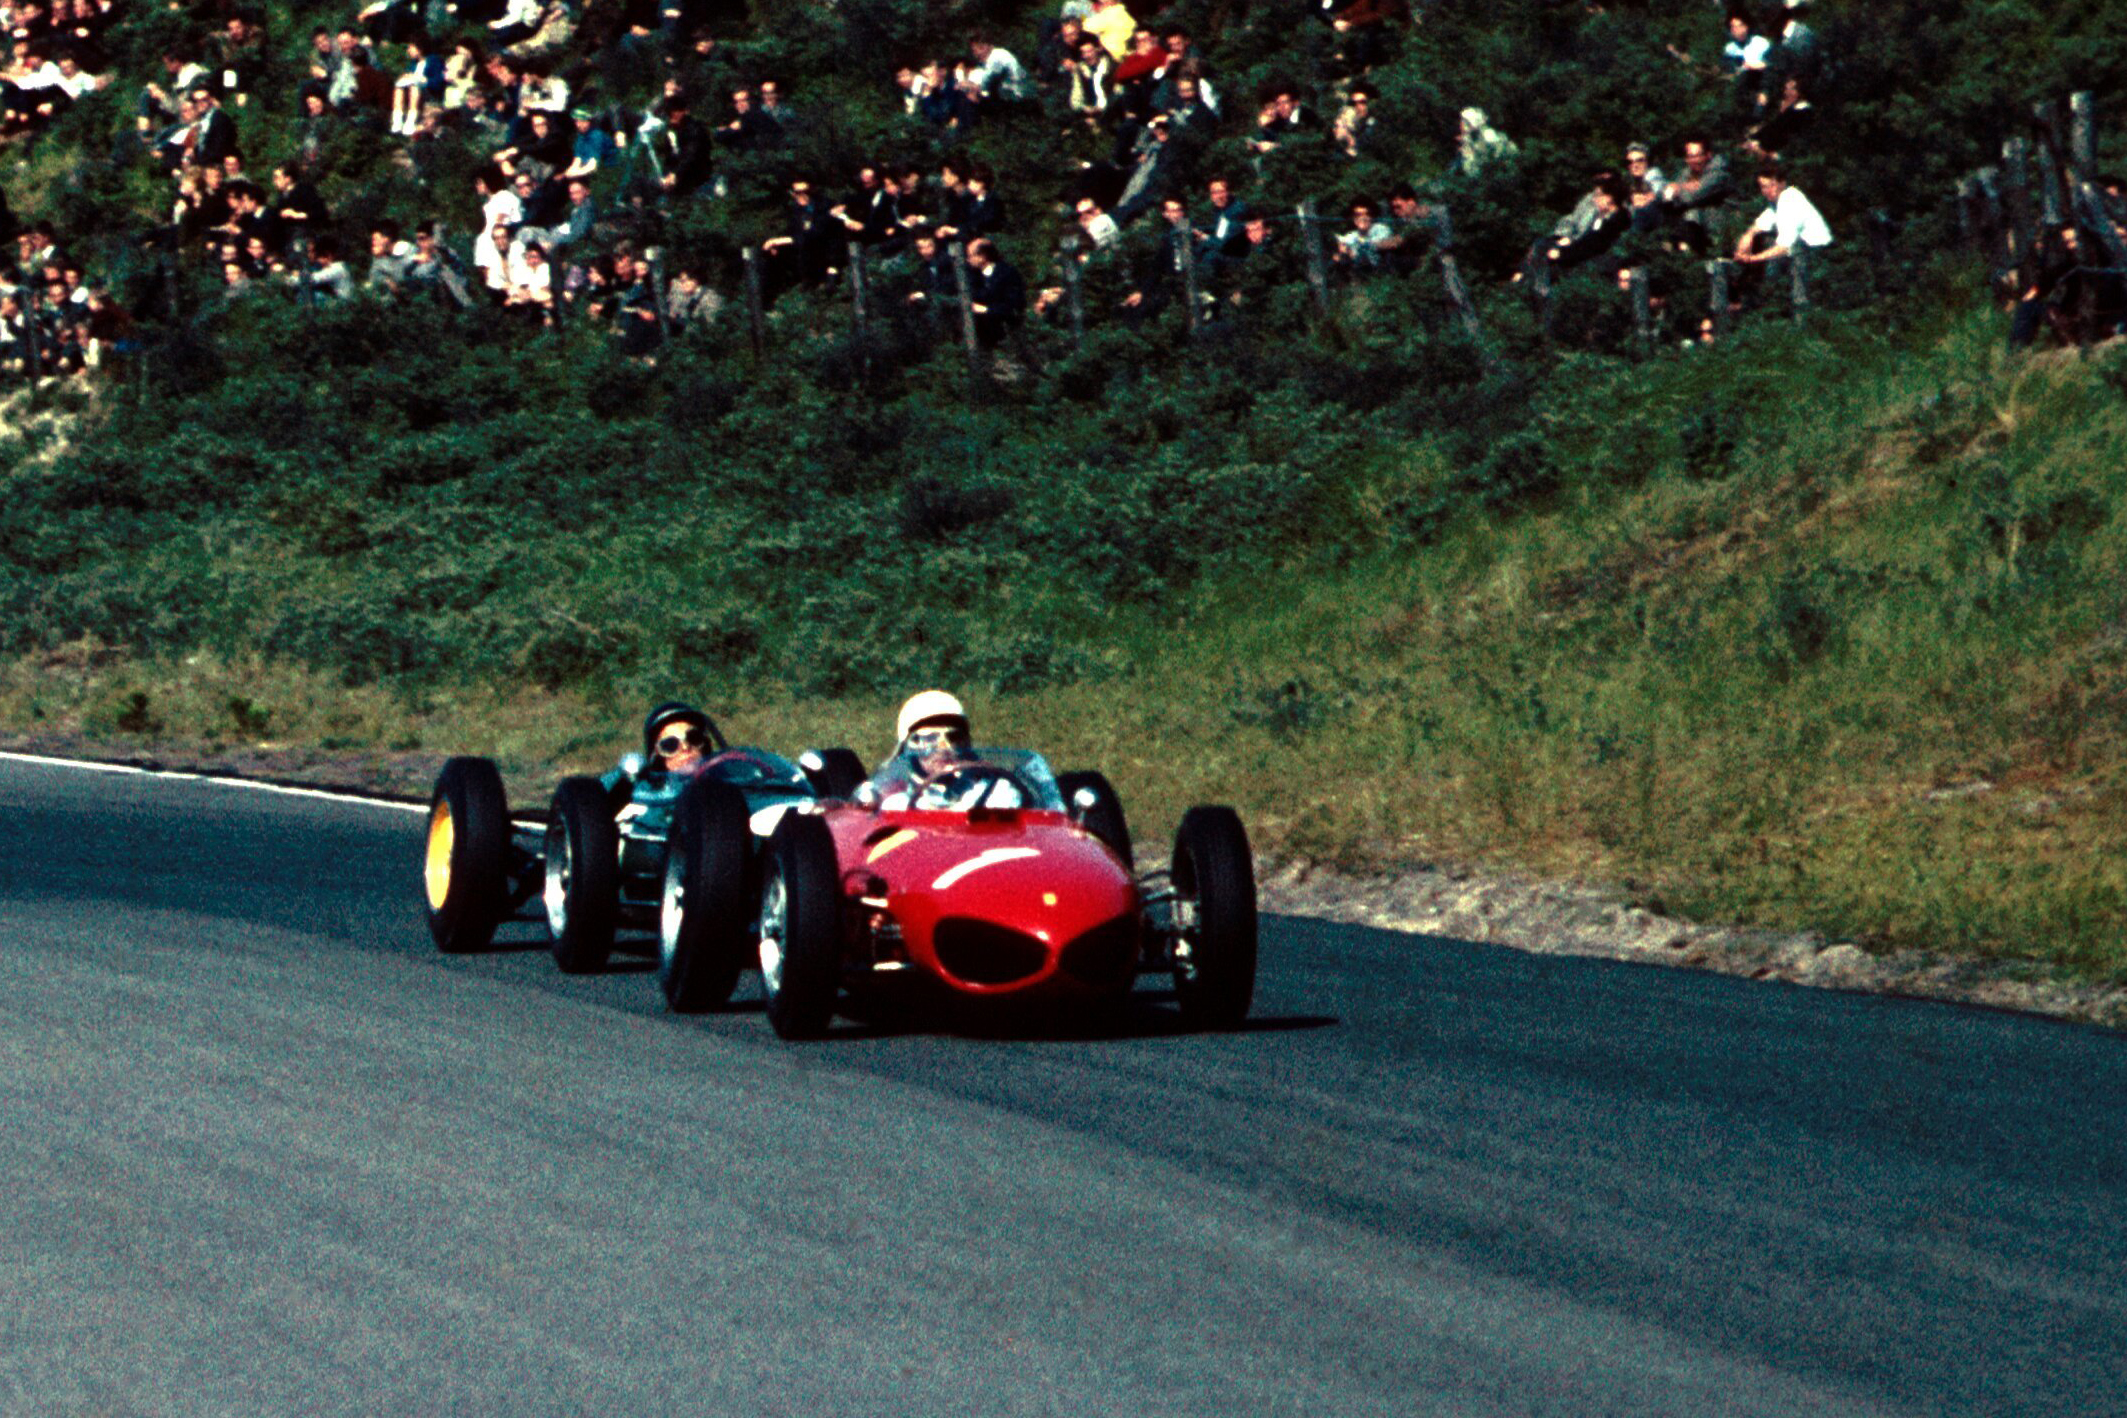 Jim Clark at the wheel of a Lotus 21 chasing Phil Hill in his Ferrari 156.